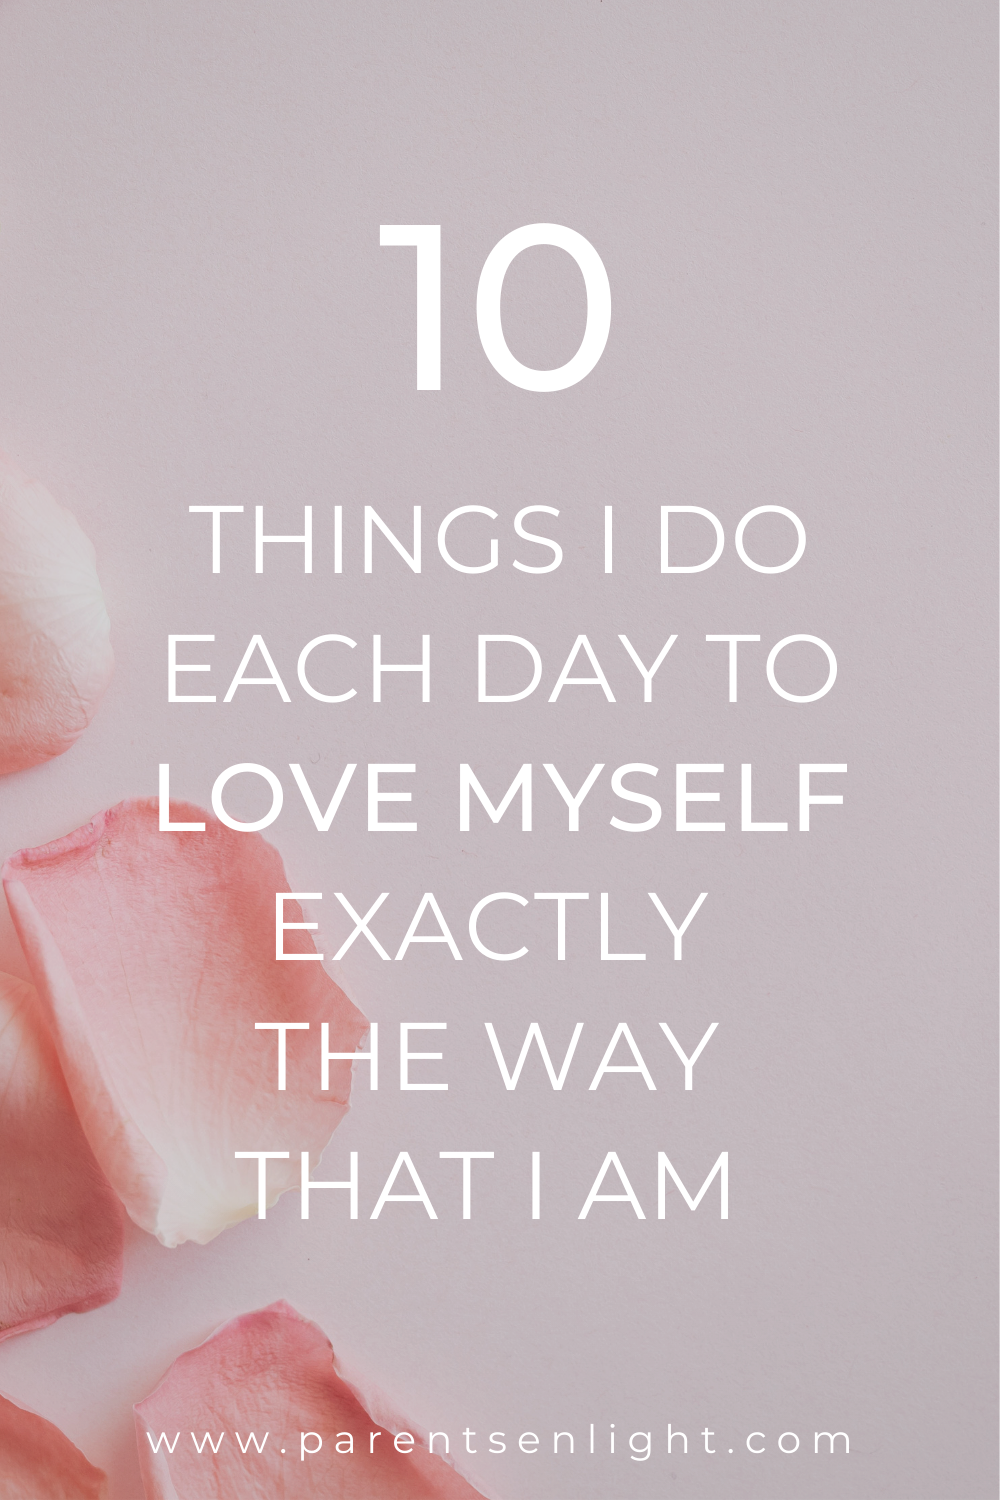 We don't love ourselves. Most of us don't. Instead, we try to constantly change ourseves to be someone else; someone better. And we suffer all during this process that is never achievable. This is what I do to love myself fully, just the way that I am. This is what you can do, too. #selflove #selfcare #mindfulness #motherhood #happylife #howtoloveyourself #howtobehappy